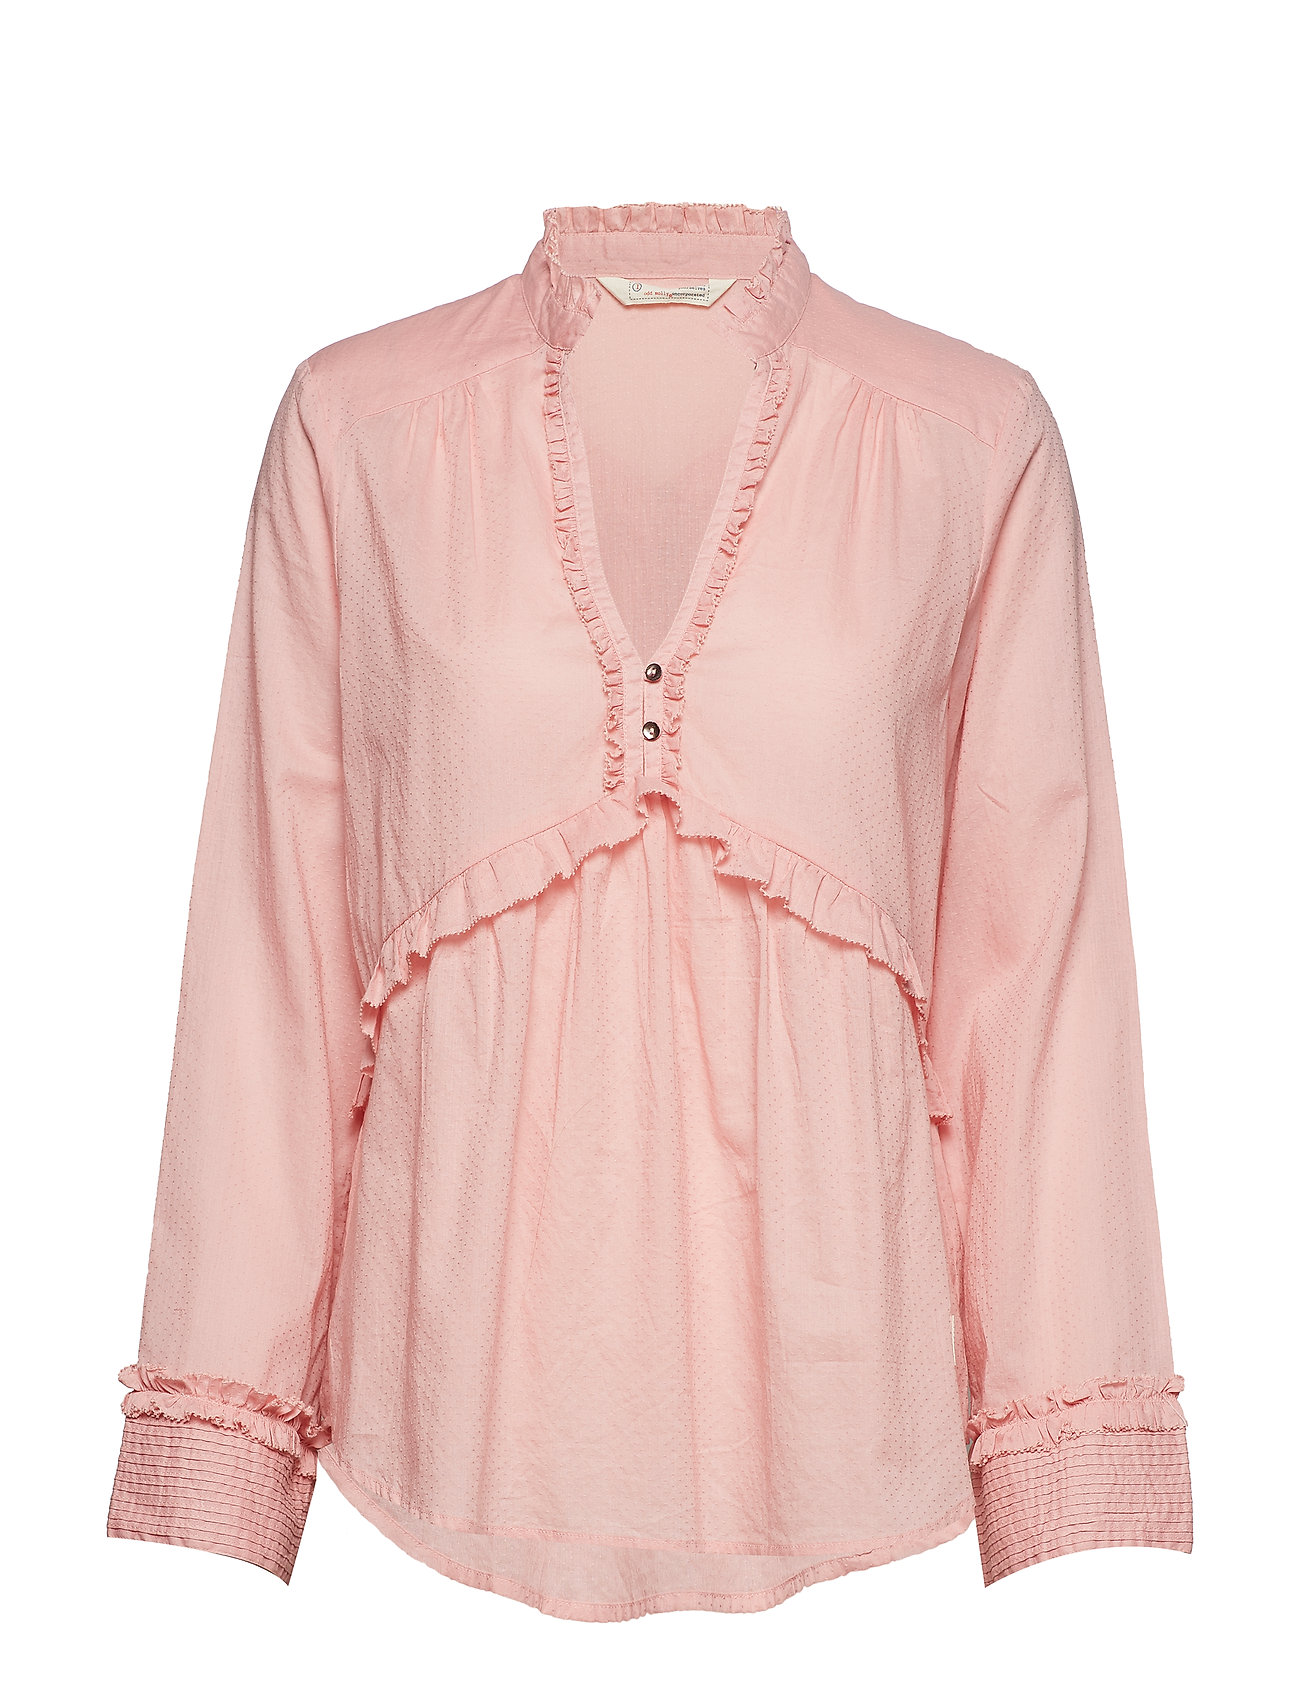 ODD MOLLY full frill blouse - BLOSSOM